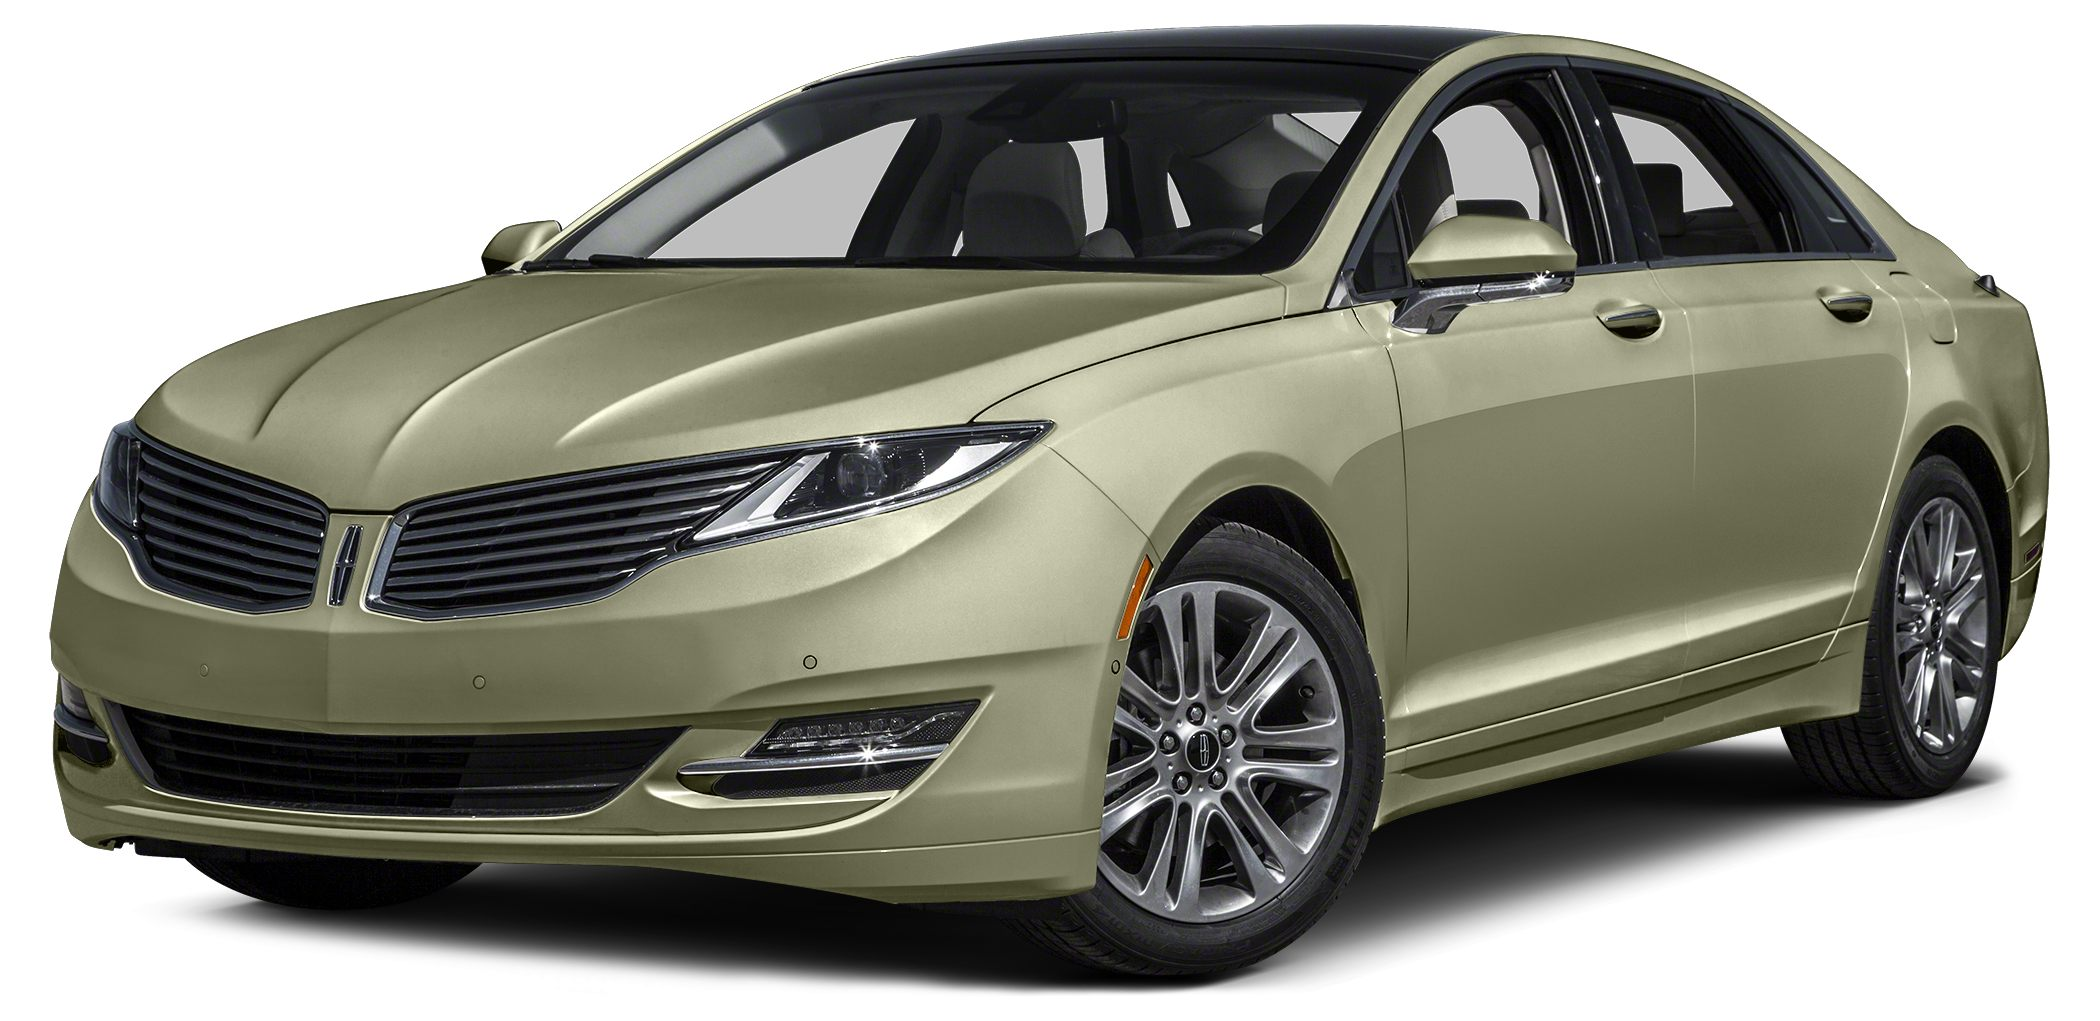 2014 Lincoln MKZ Base Turbo Dont let the miles fool you This gorgeous 2014 Lincoln MKZ is the r